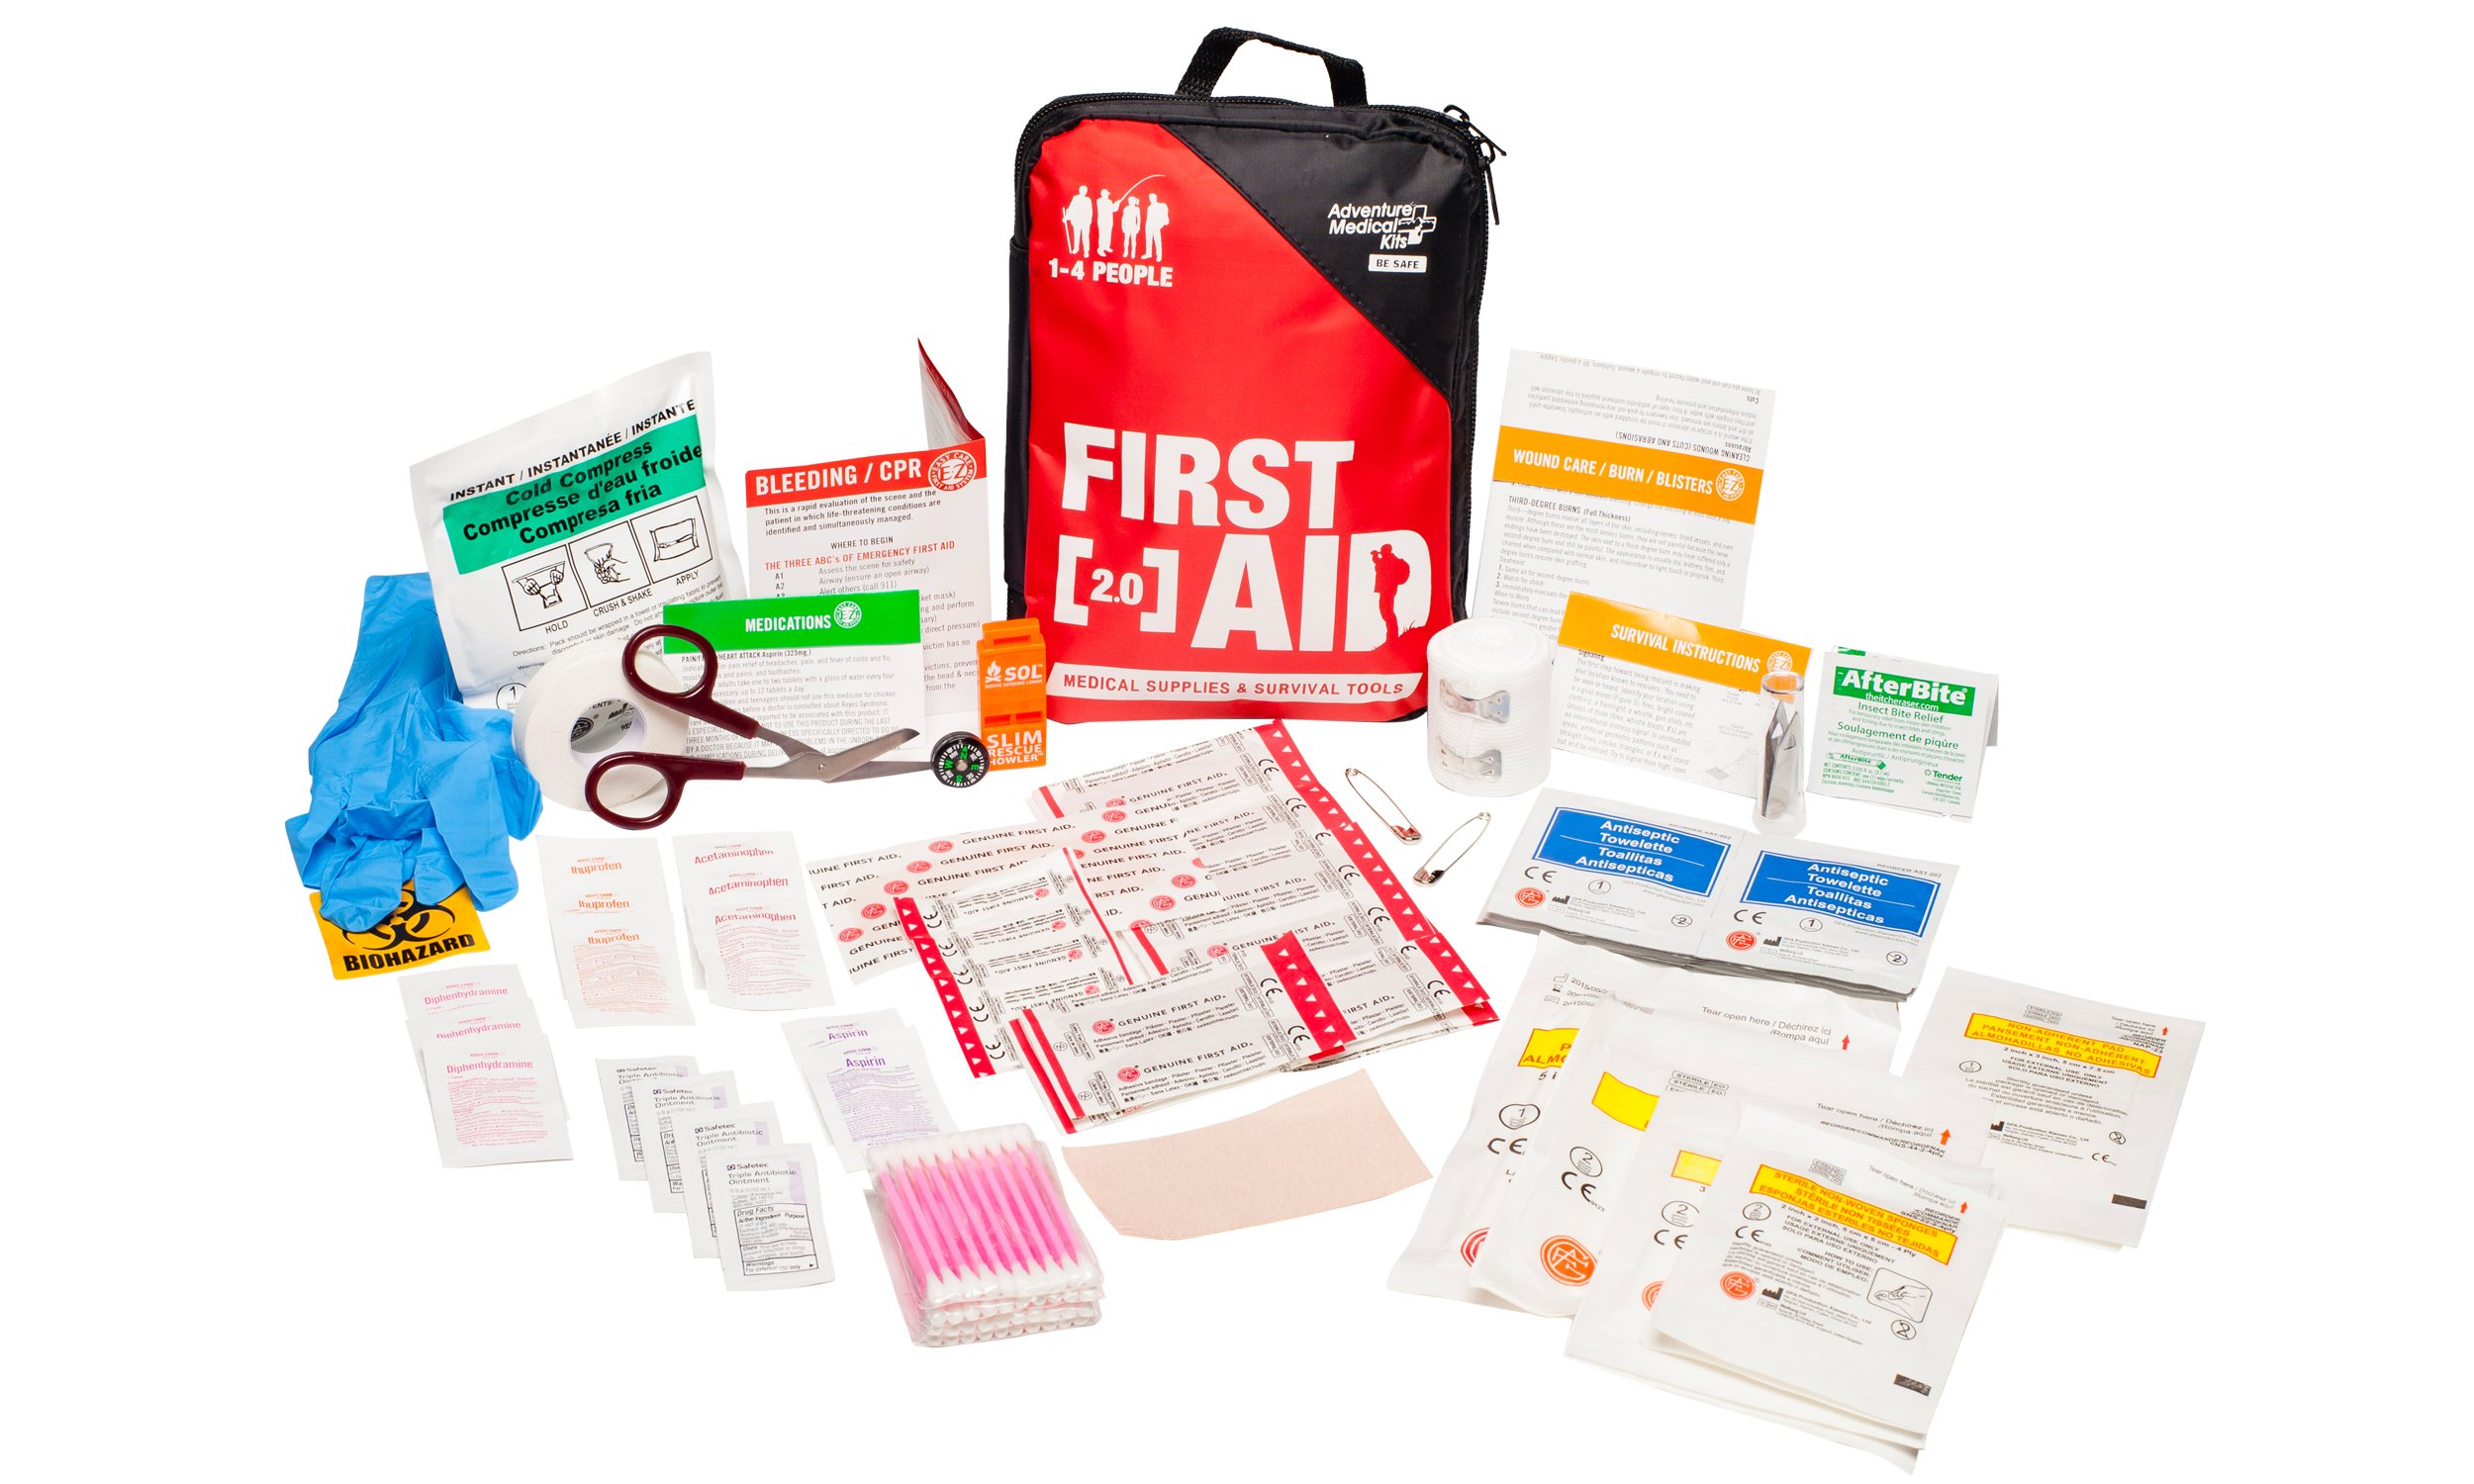 Adventure Medical Kits Adventure First Aid 2.0 First Aid Kit, Easy Care, Survival Items, Active Families, First Aid Essentials, Durable Case, Fully Stocked, 1lb 1oz